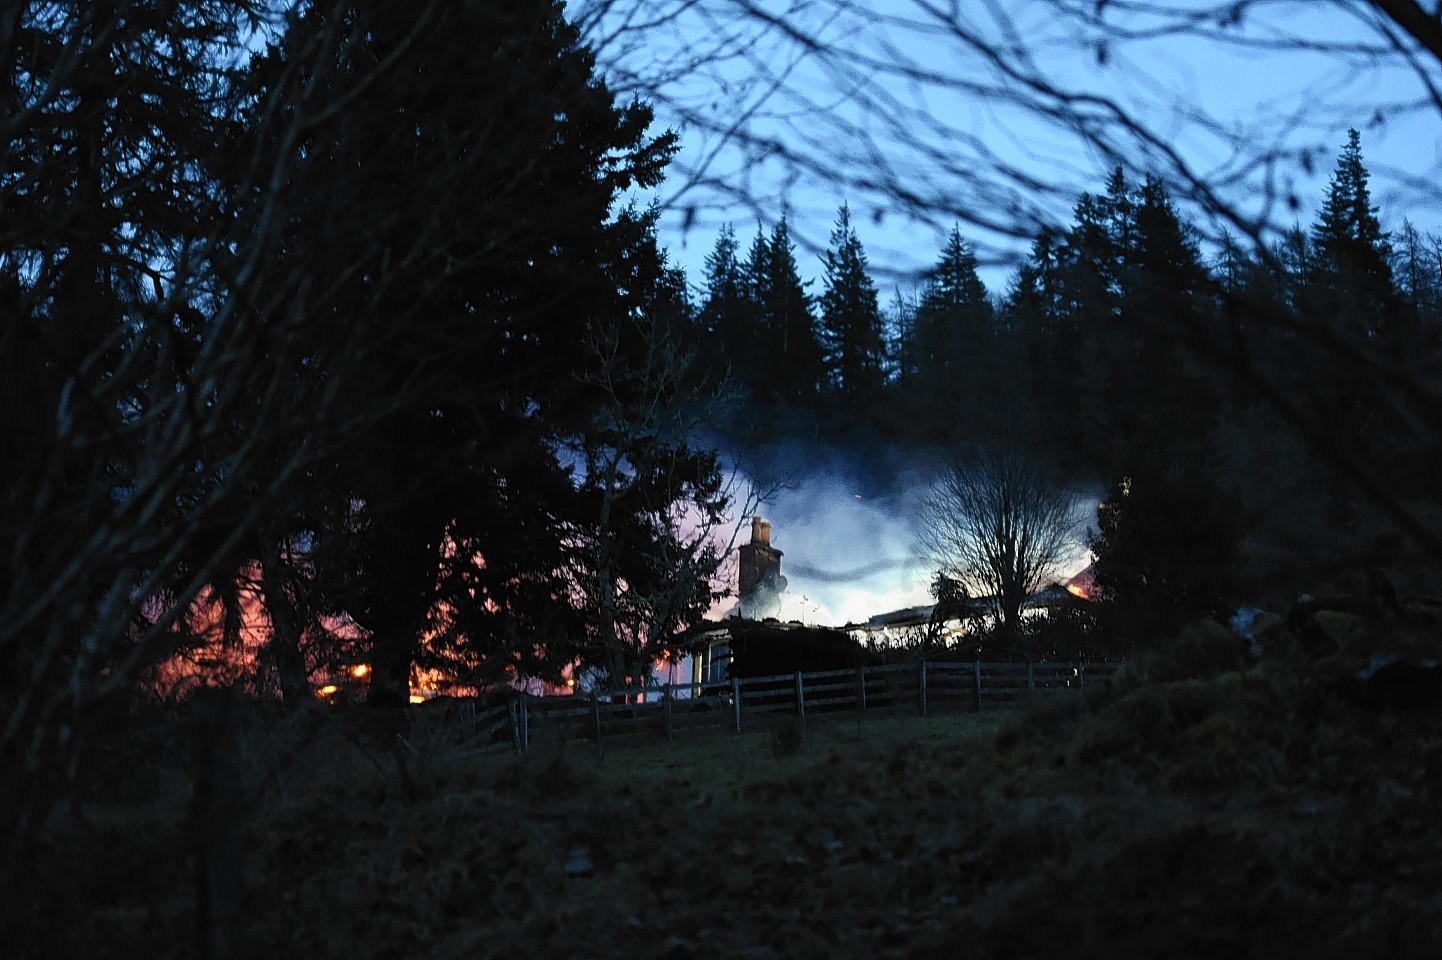 Boleskine House up in flames